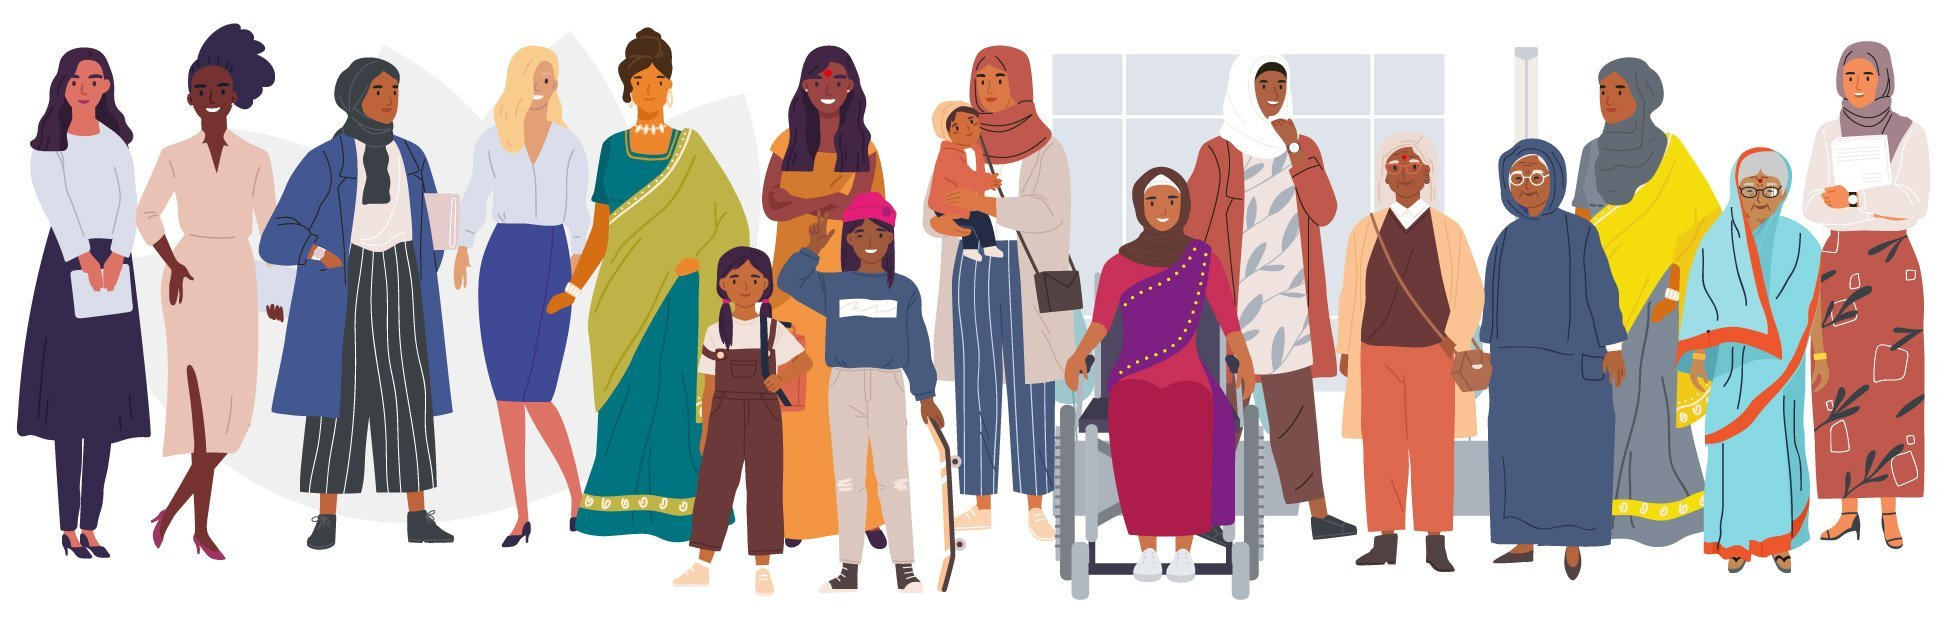 Illustration of a range of women coming together